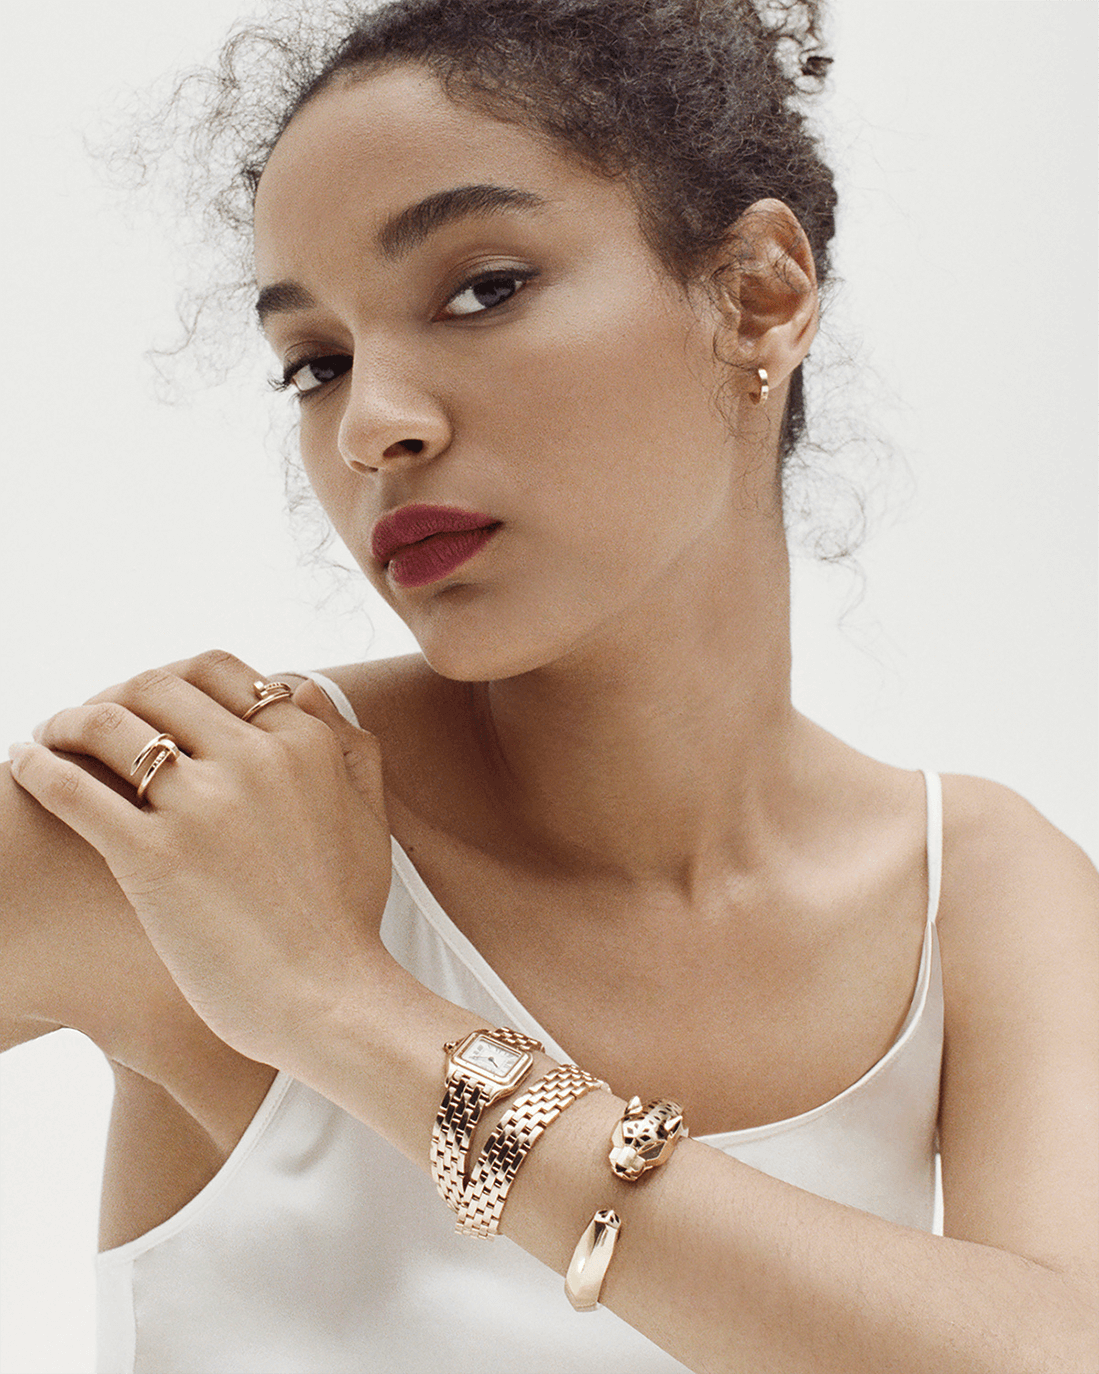 woman in datura dress, JUSTE UN CLOU RING YELLOW GOLD, PANTHÈRE DE CARTIER BRACELET YELLOW GOLD, single LOVE EARRING YELLOW GOLD, JUSTE UN CLOU RING YELLOW GOLD and PANTHÈRE DE CARTIER WATCH YELLOW GOLD